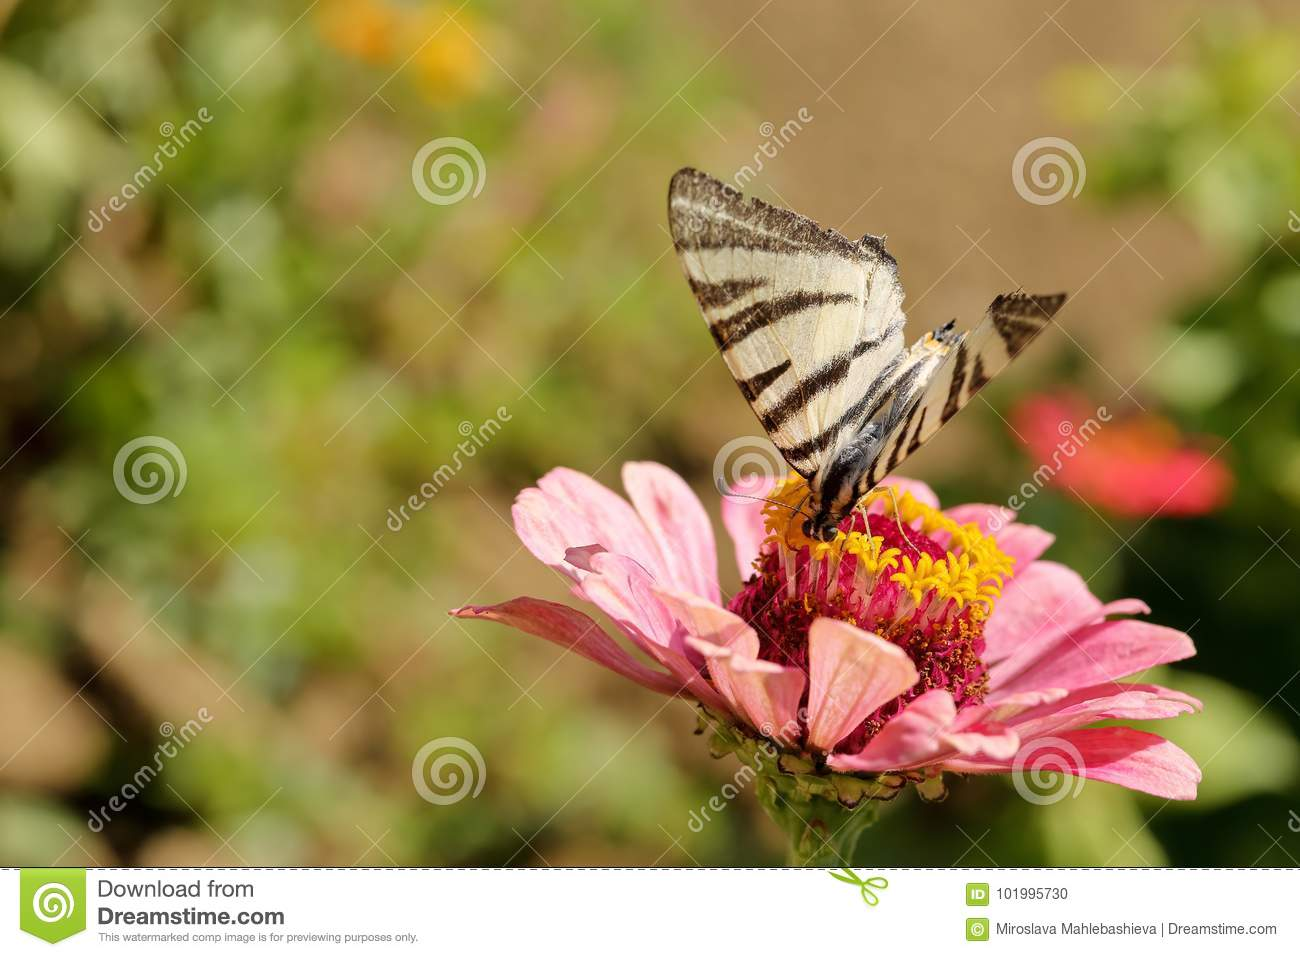 Macro of a Swallowtail Papilionidae butterfly drinking nectar on a pink zinnia elegans flower against blurred natural green backgr